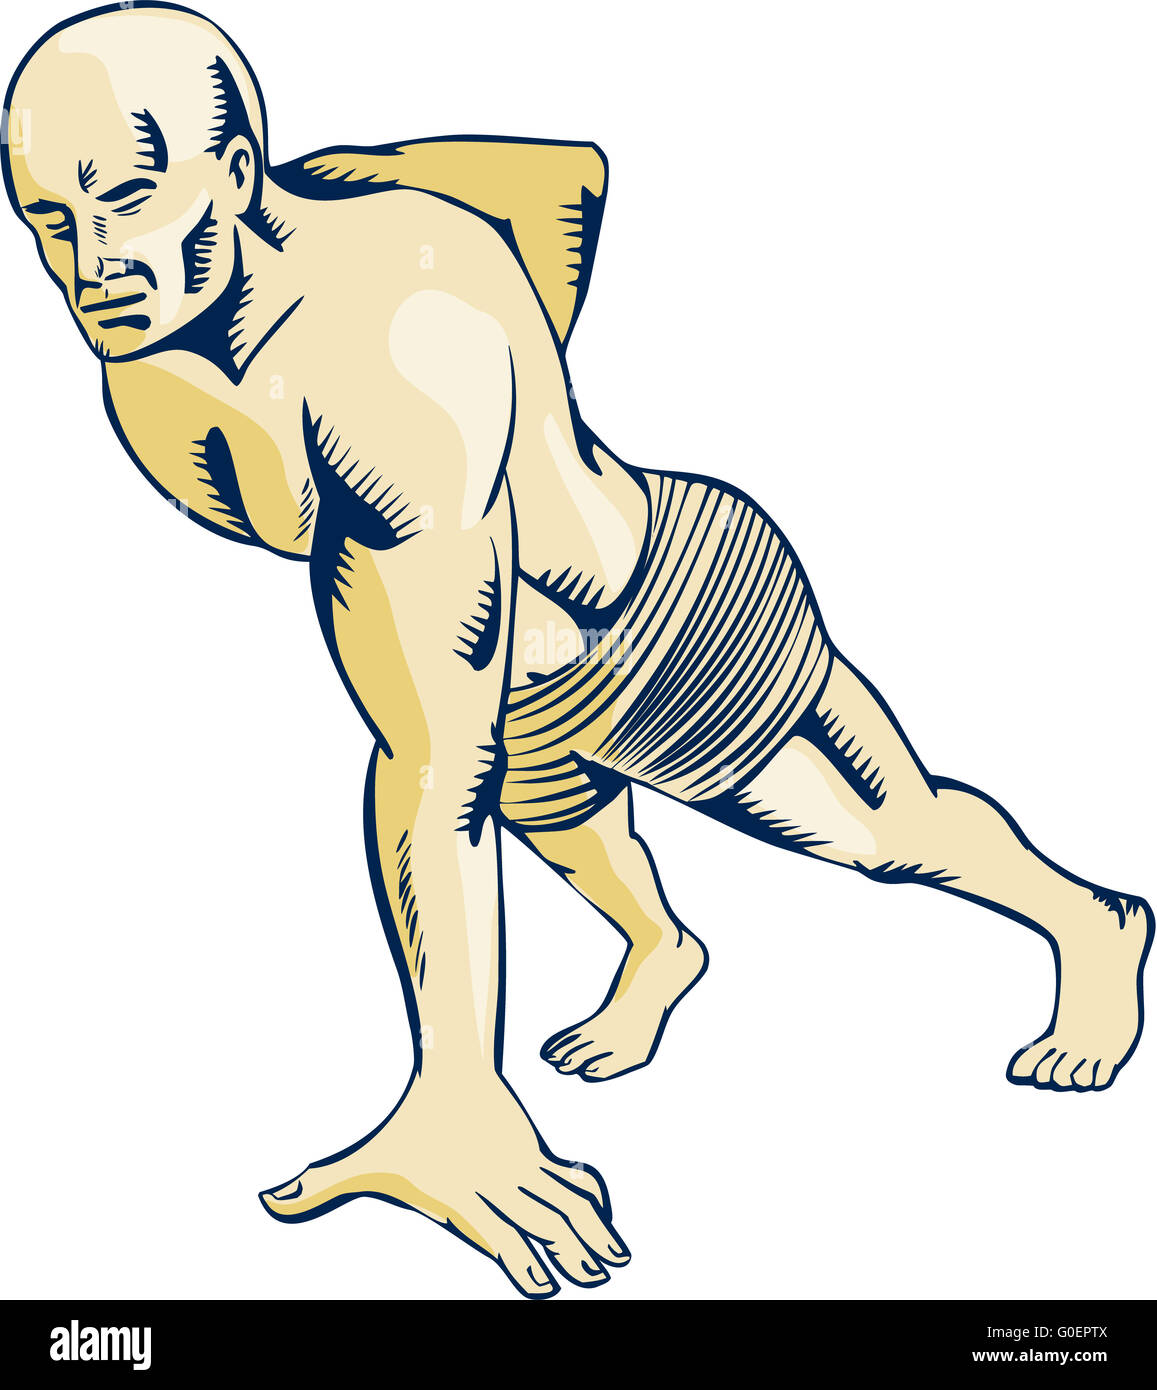 Muscle Vintage Engraved Illustration Stock Photos & Muscle Vintage ...